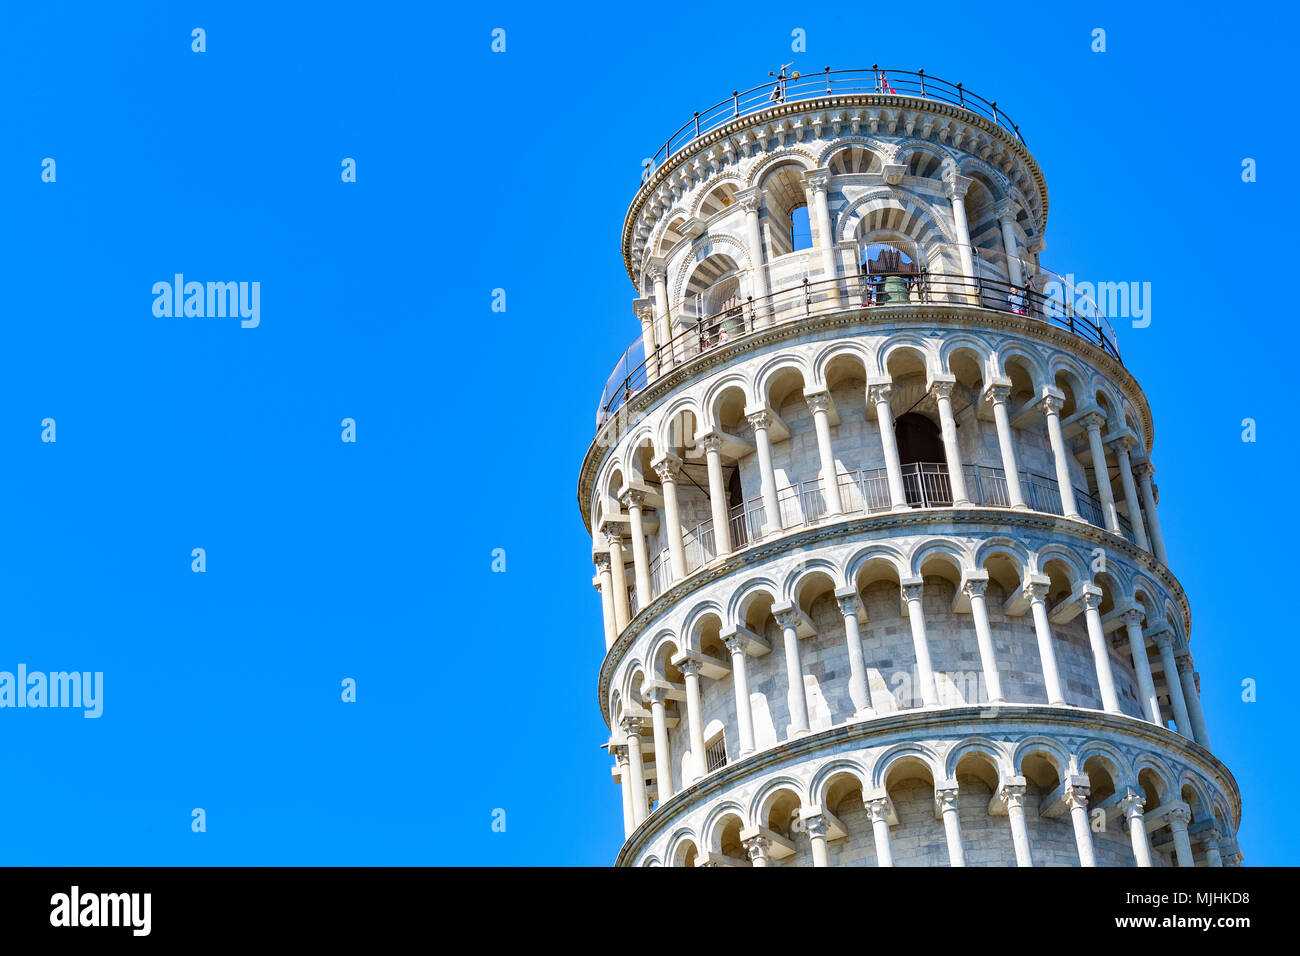 Leaning tower of Pisa, Italy against a cloudless blue sky Stock Photo